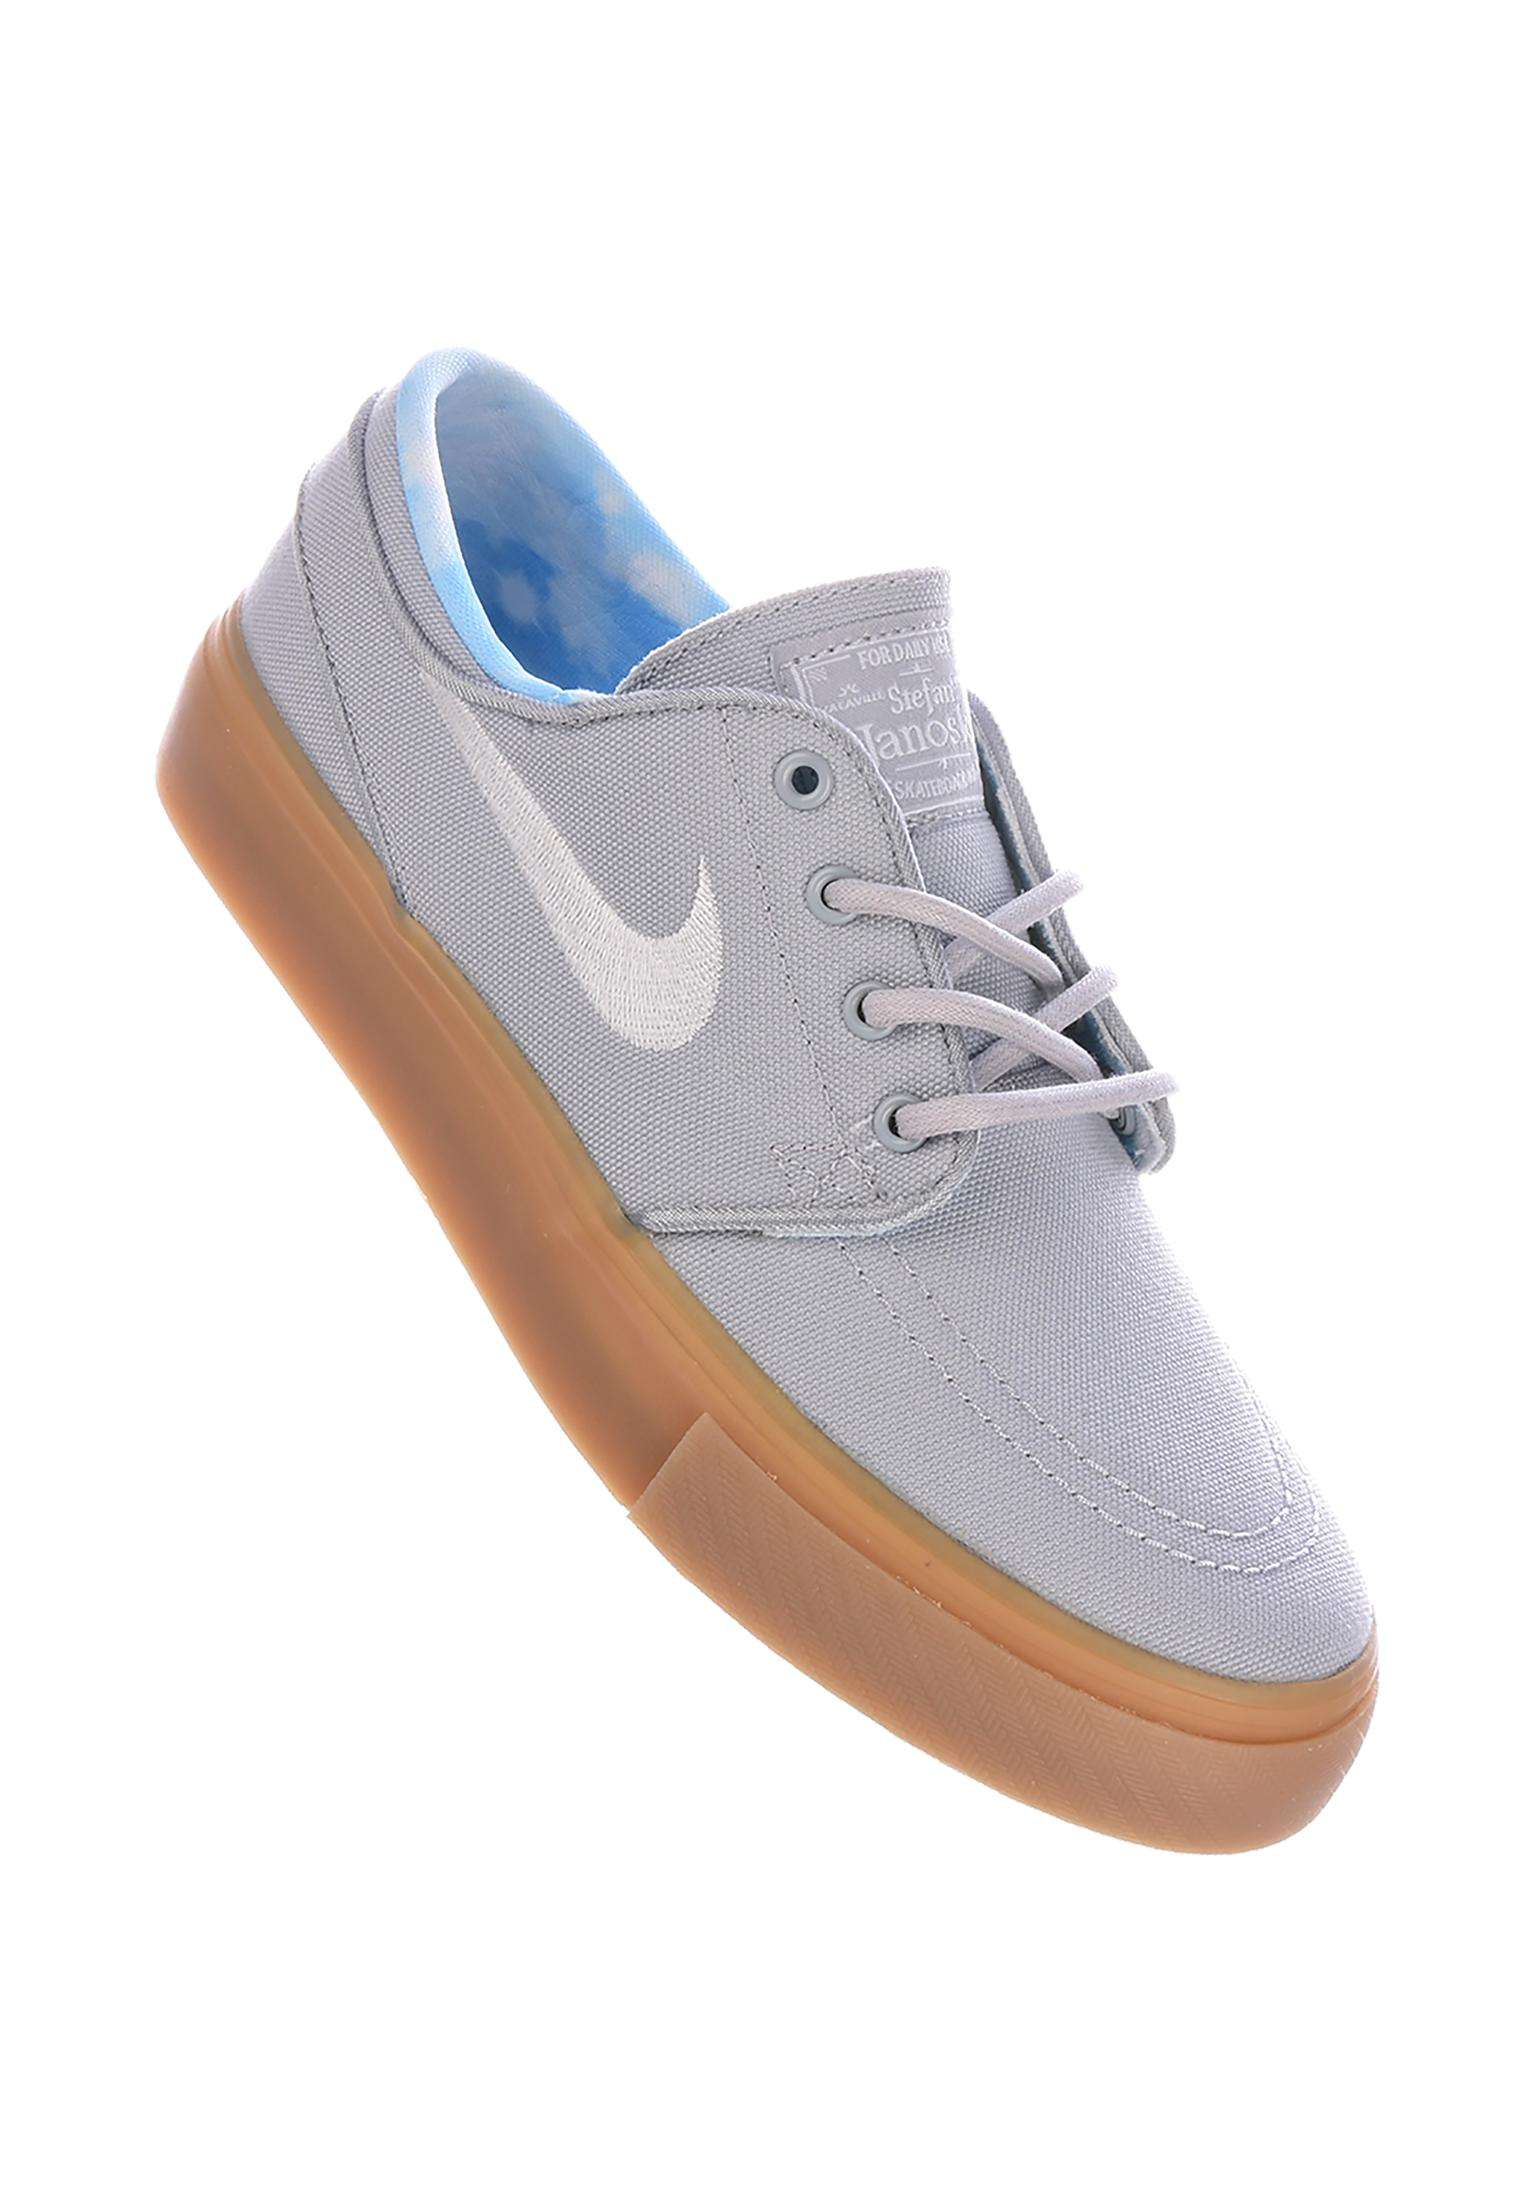 new concept 5175c 6026a Zoom Stefan Janoski Canvas GS Nike SB All Shoes in wolfgrey-white-gum for  Kids   Titus